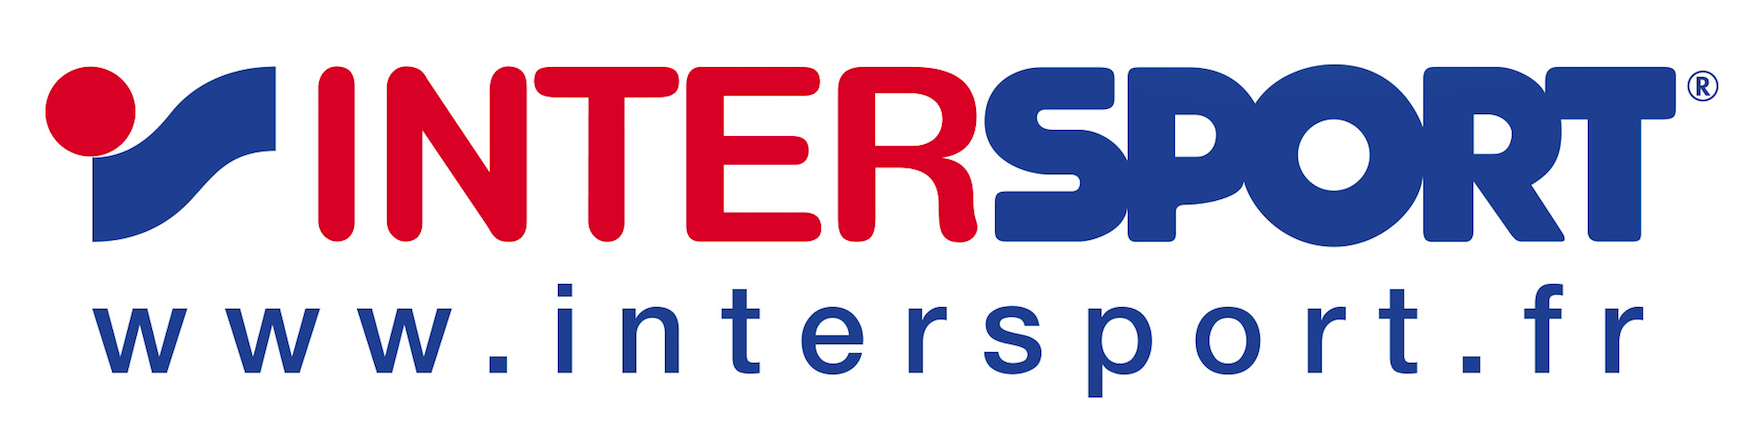 logo_intersport_2.png